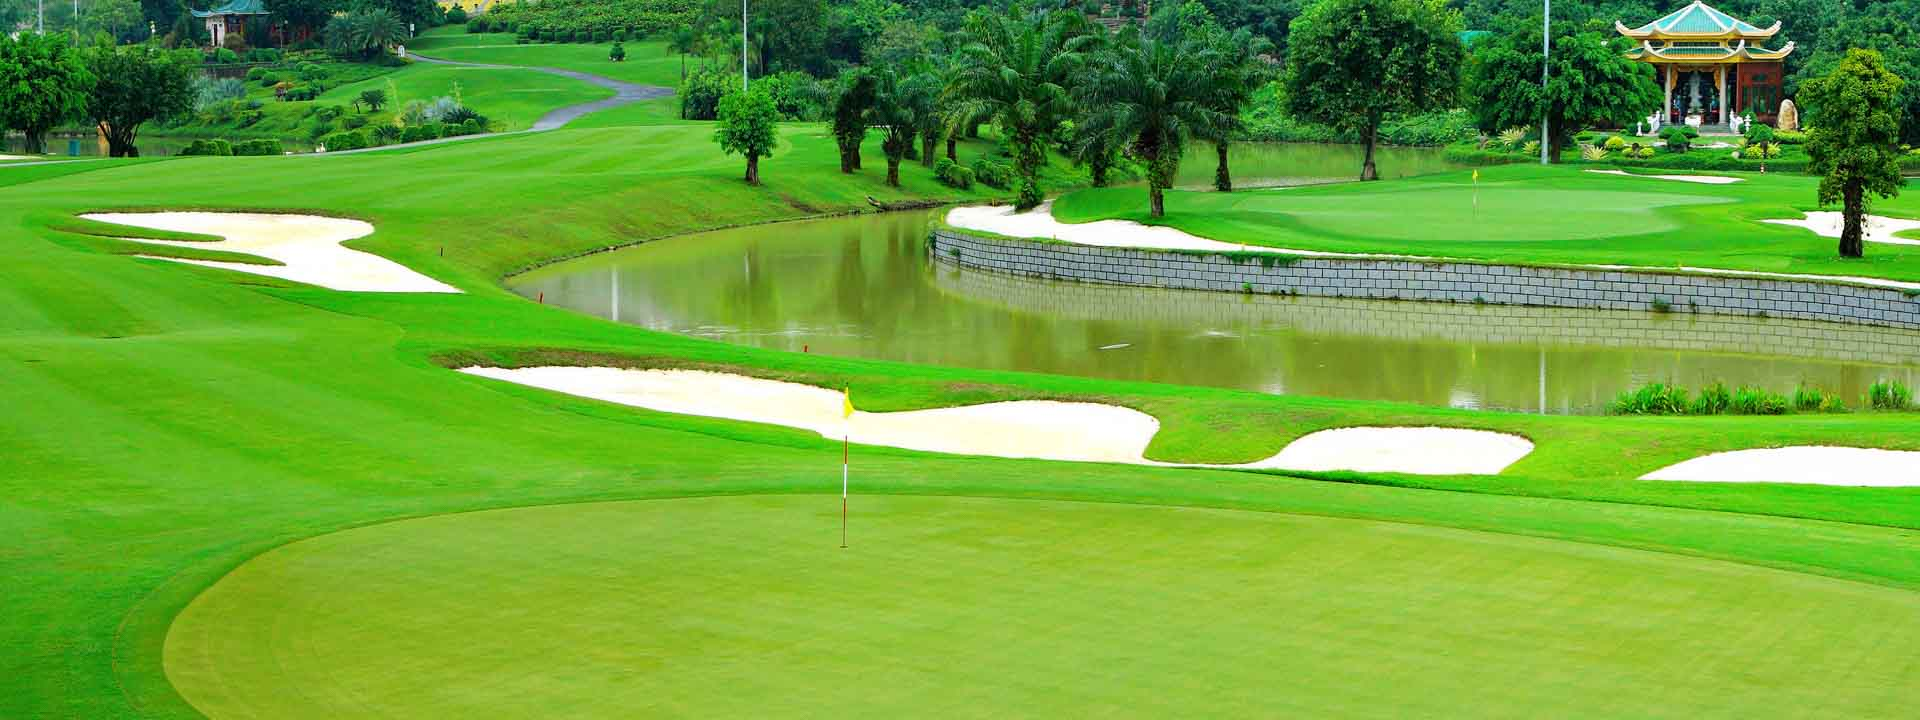 Dalat Golf Tour 3 days